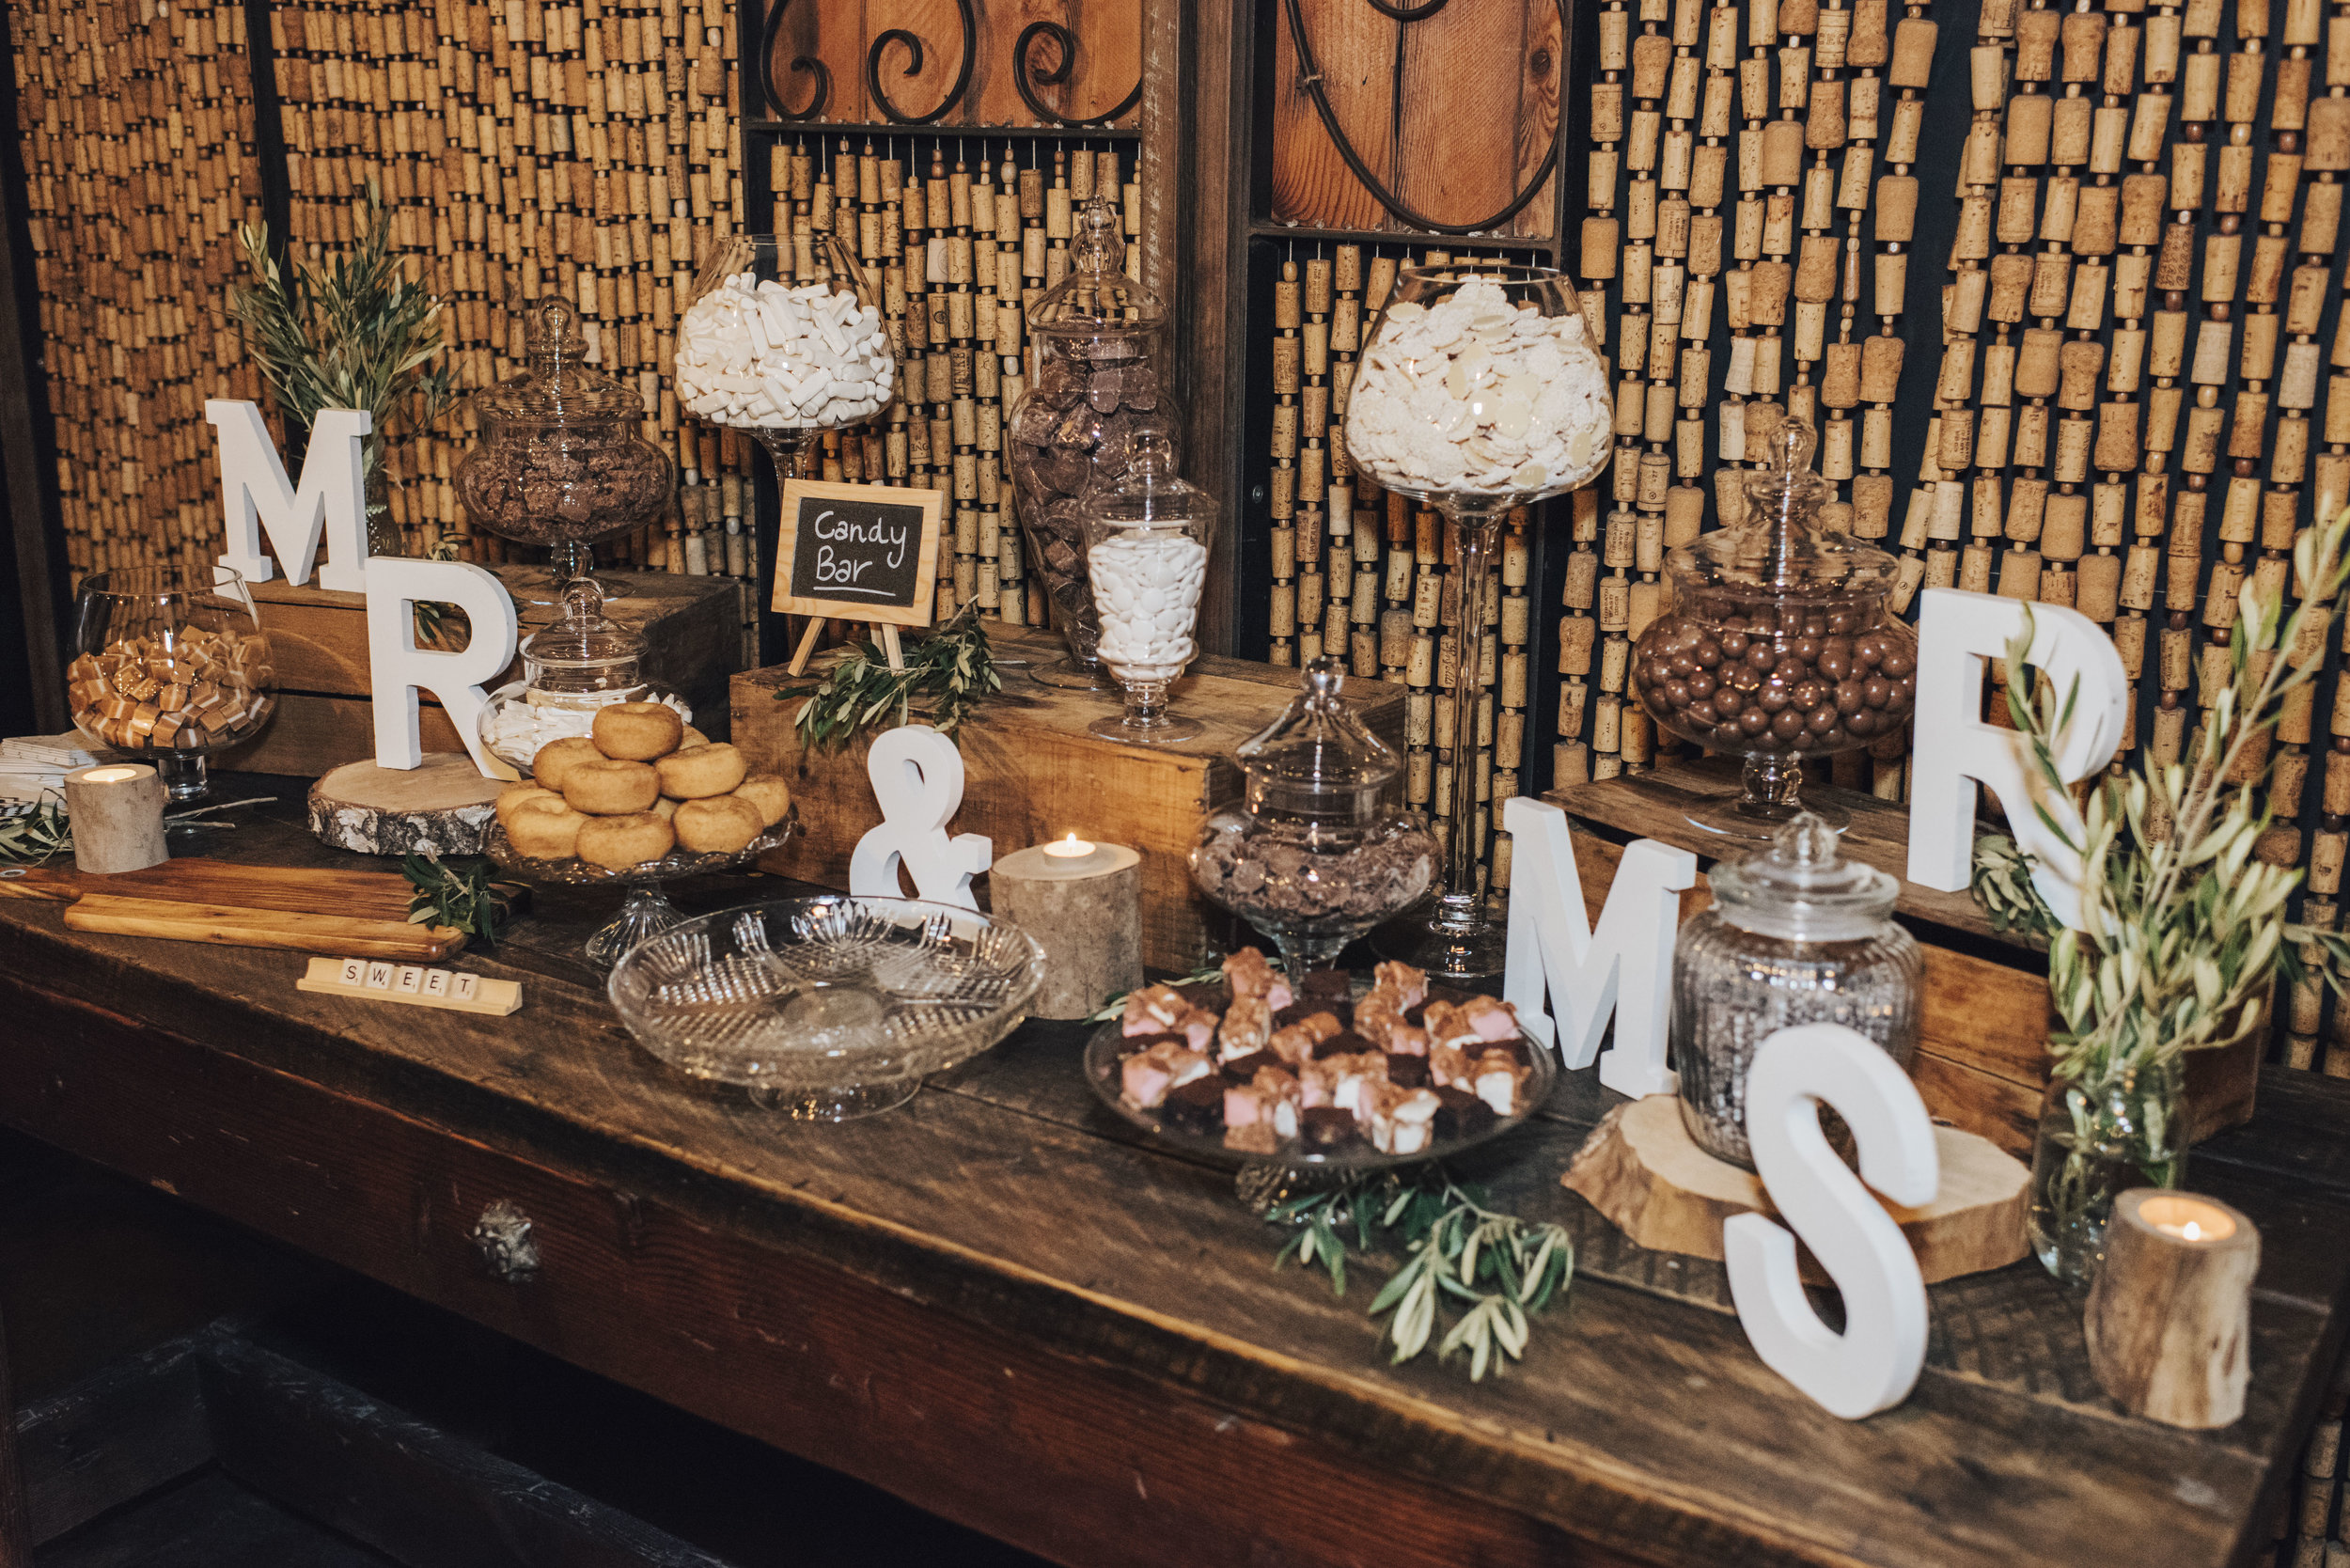 MR & MRS rustic decor